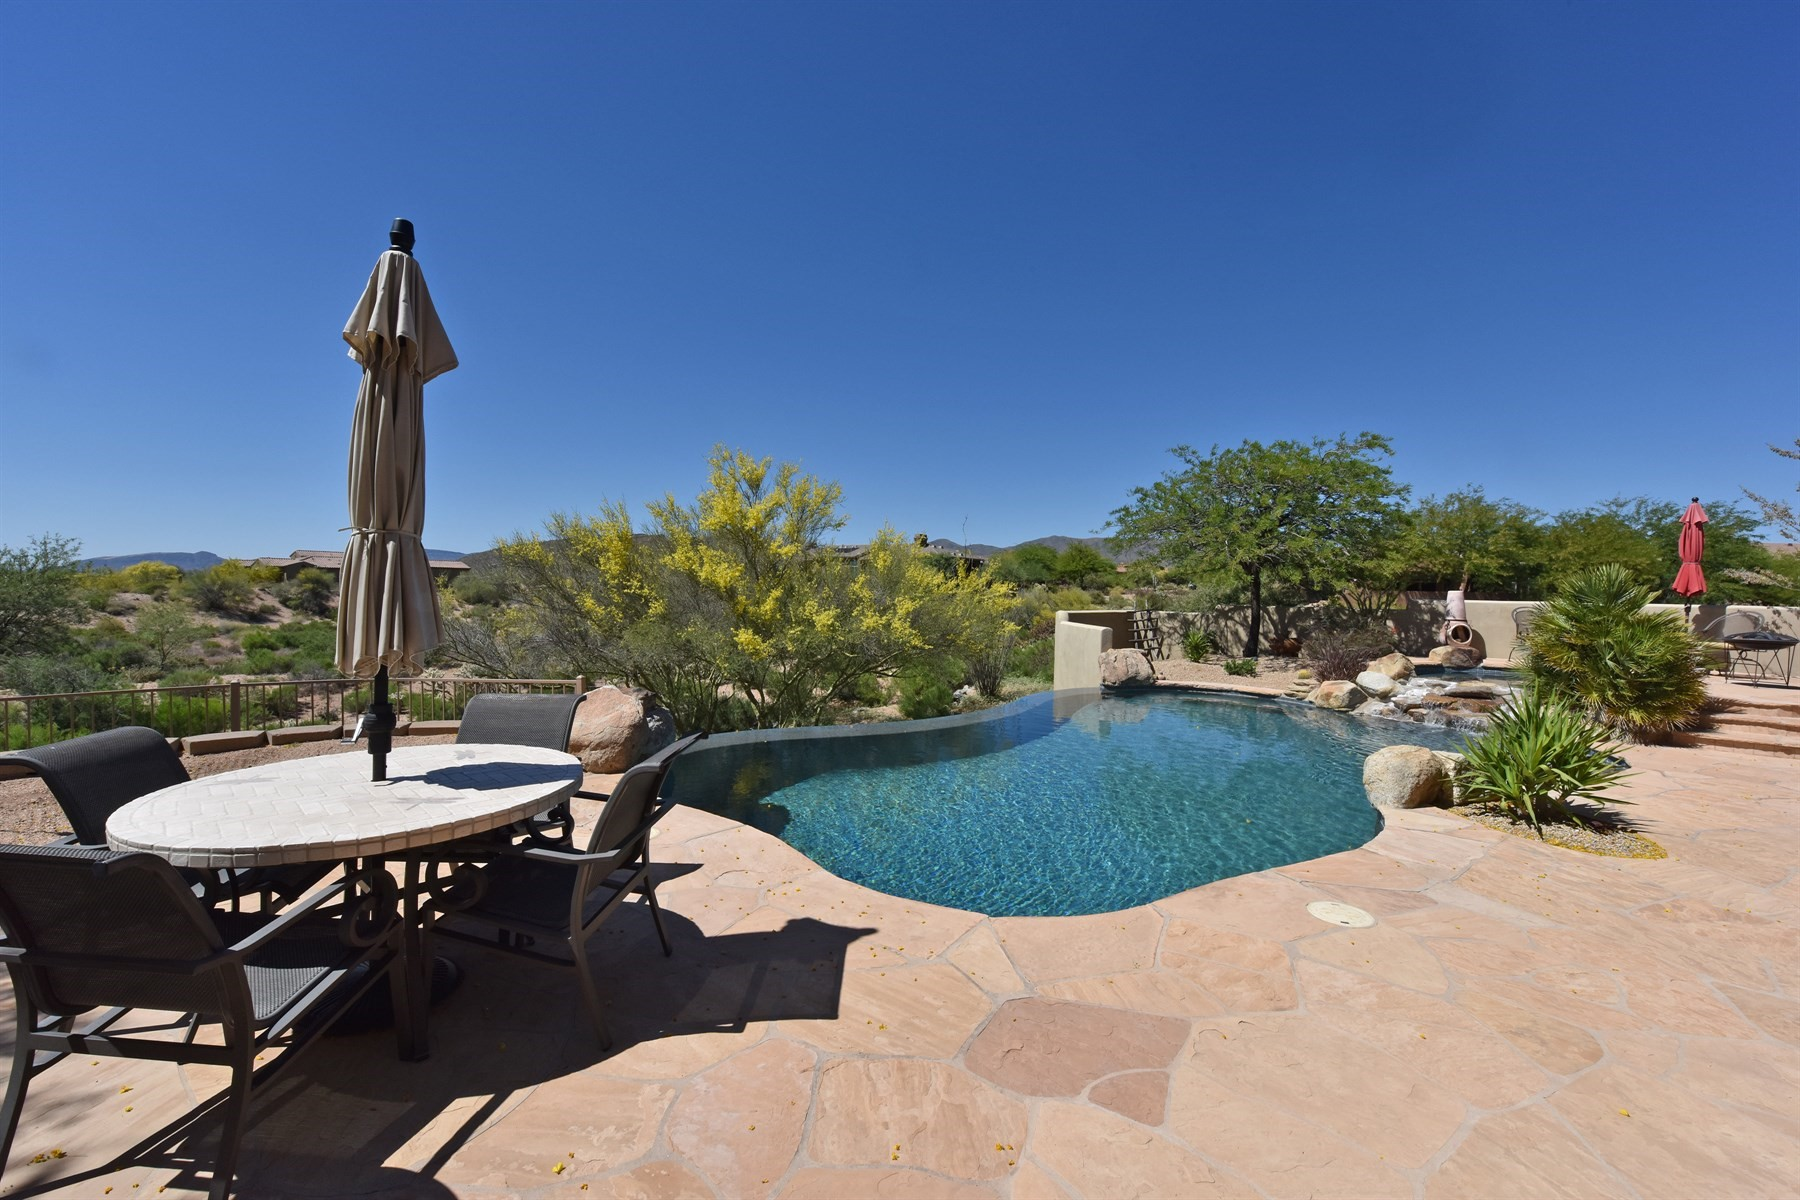 Single Family Home for Sale at Private retreat home in the gated community of Cresta Norte 10130 E Winter Sun Drive Scottsdale, Arizona, 85262 United States